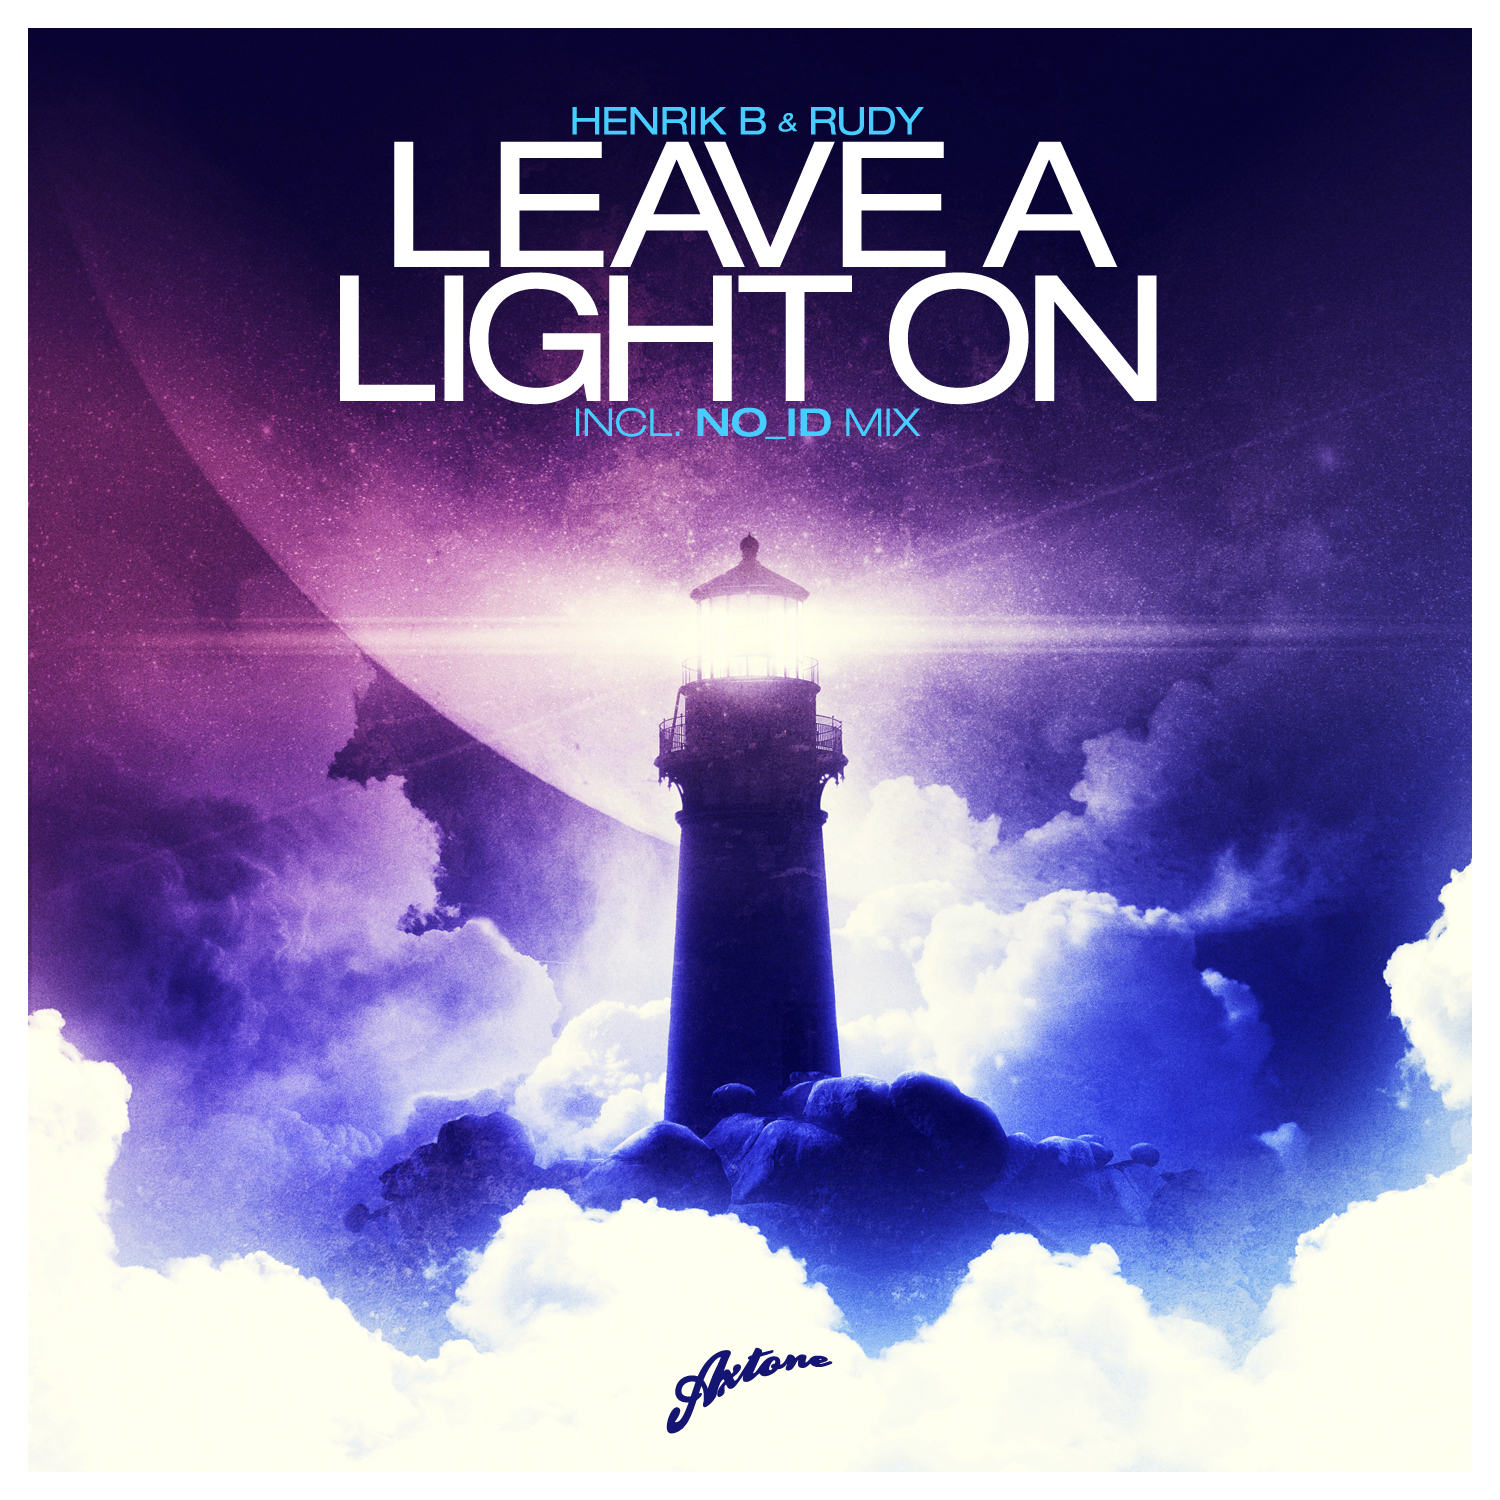 Henrik B Ruby Leave A Light On Axtone Coverart By Breakfast Design Cover Art Album Cover Art Electronic Dance Music